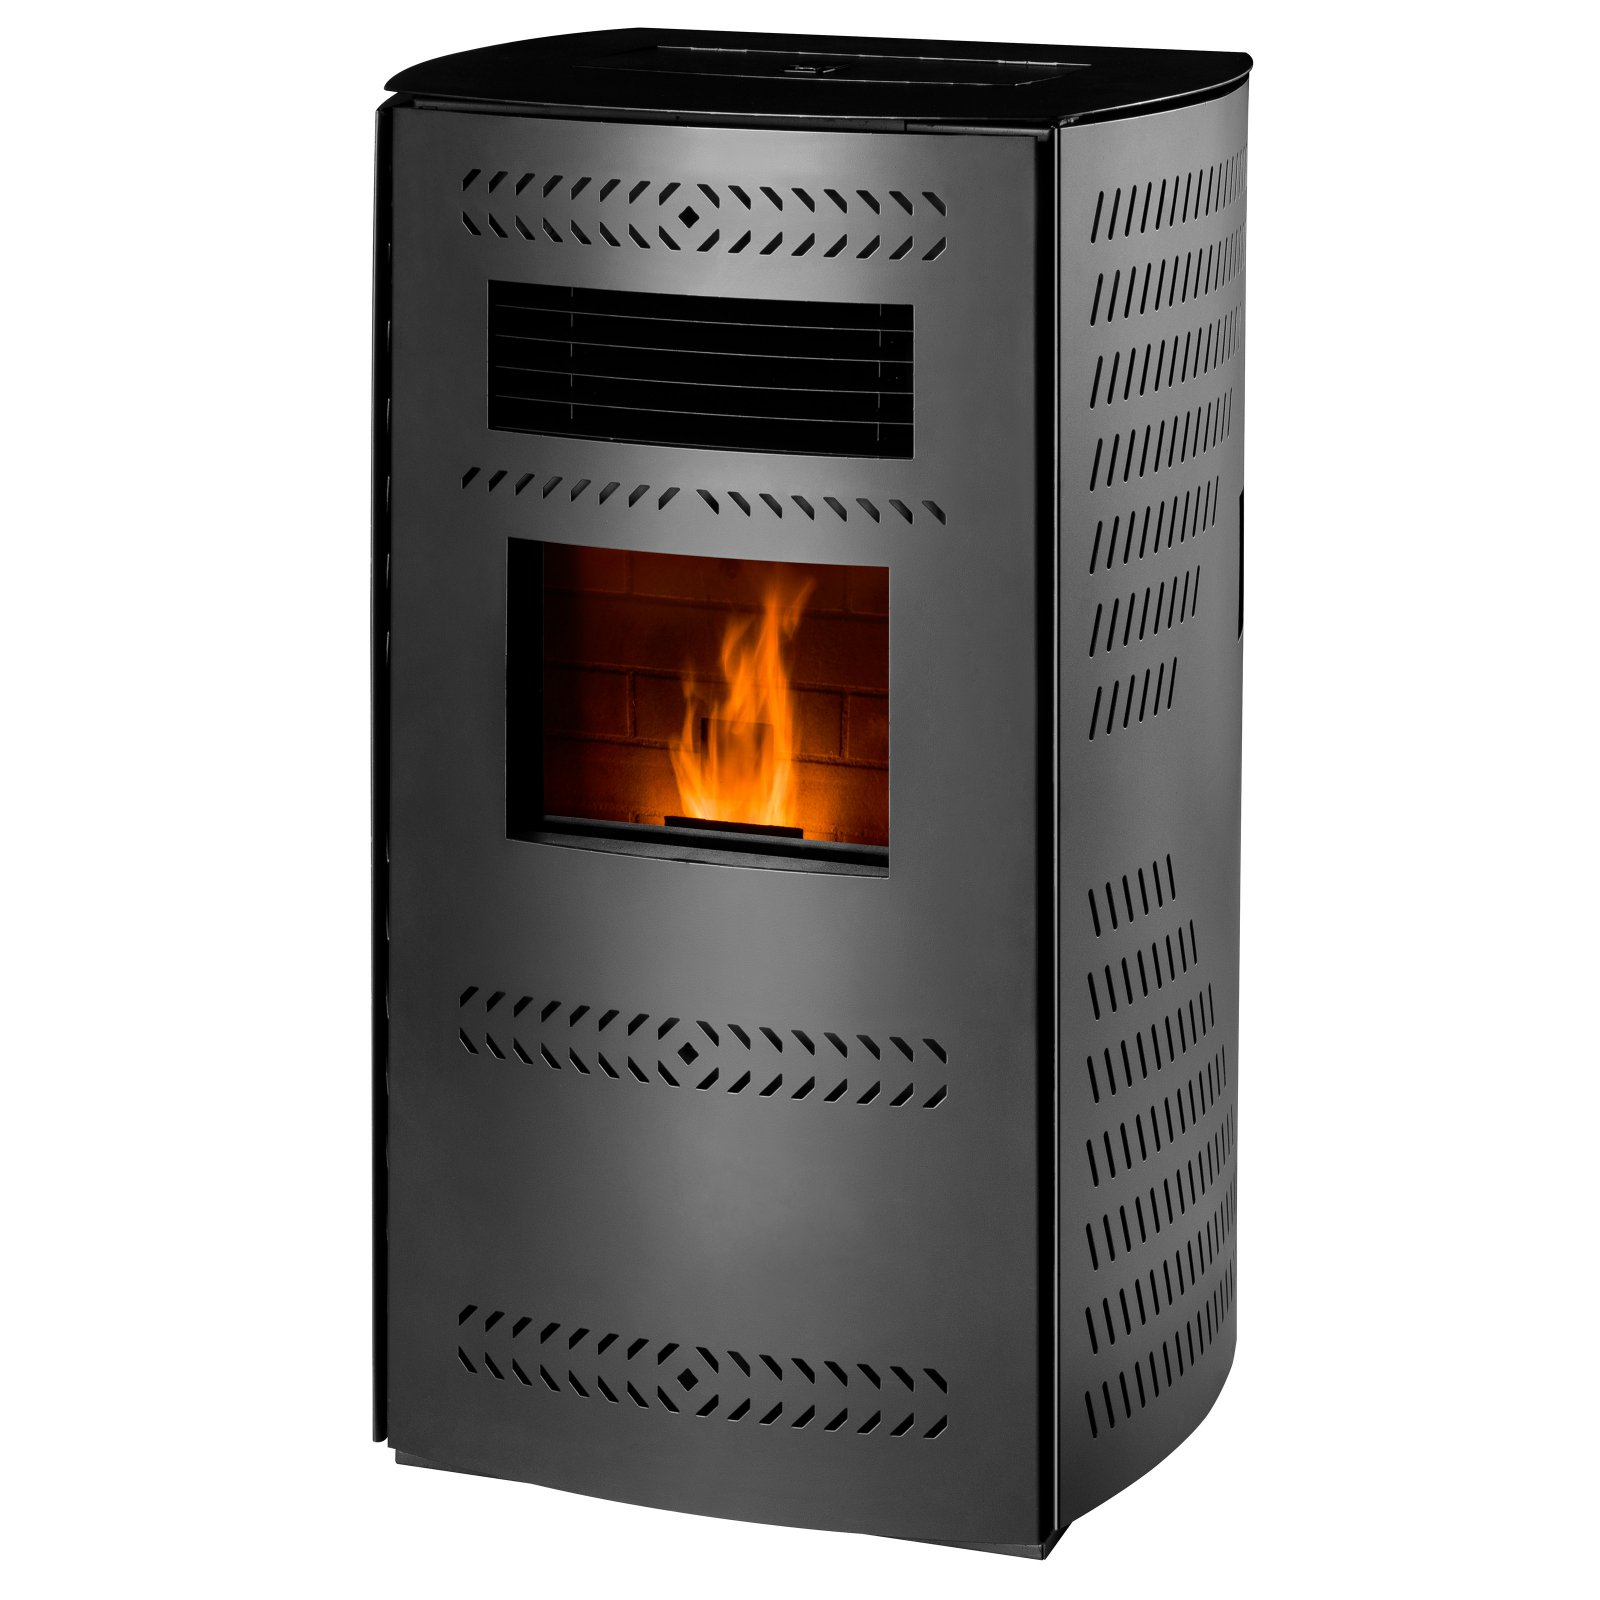 Summers Heat SHPIP Pellet Stove by